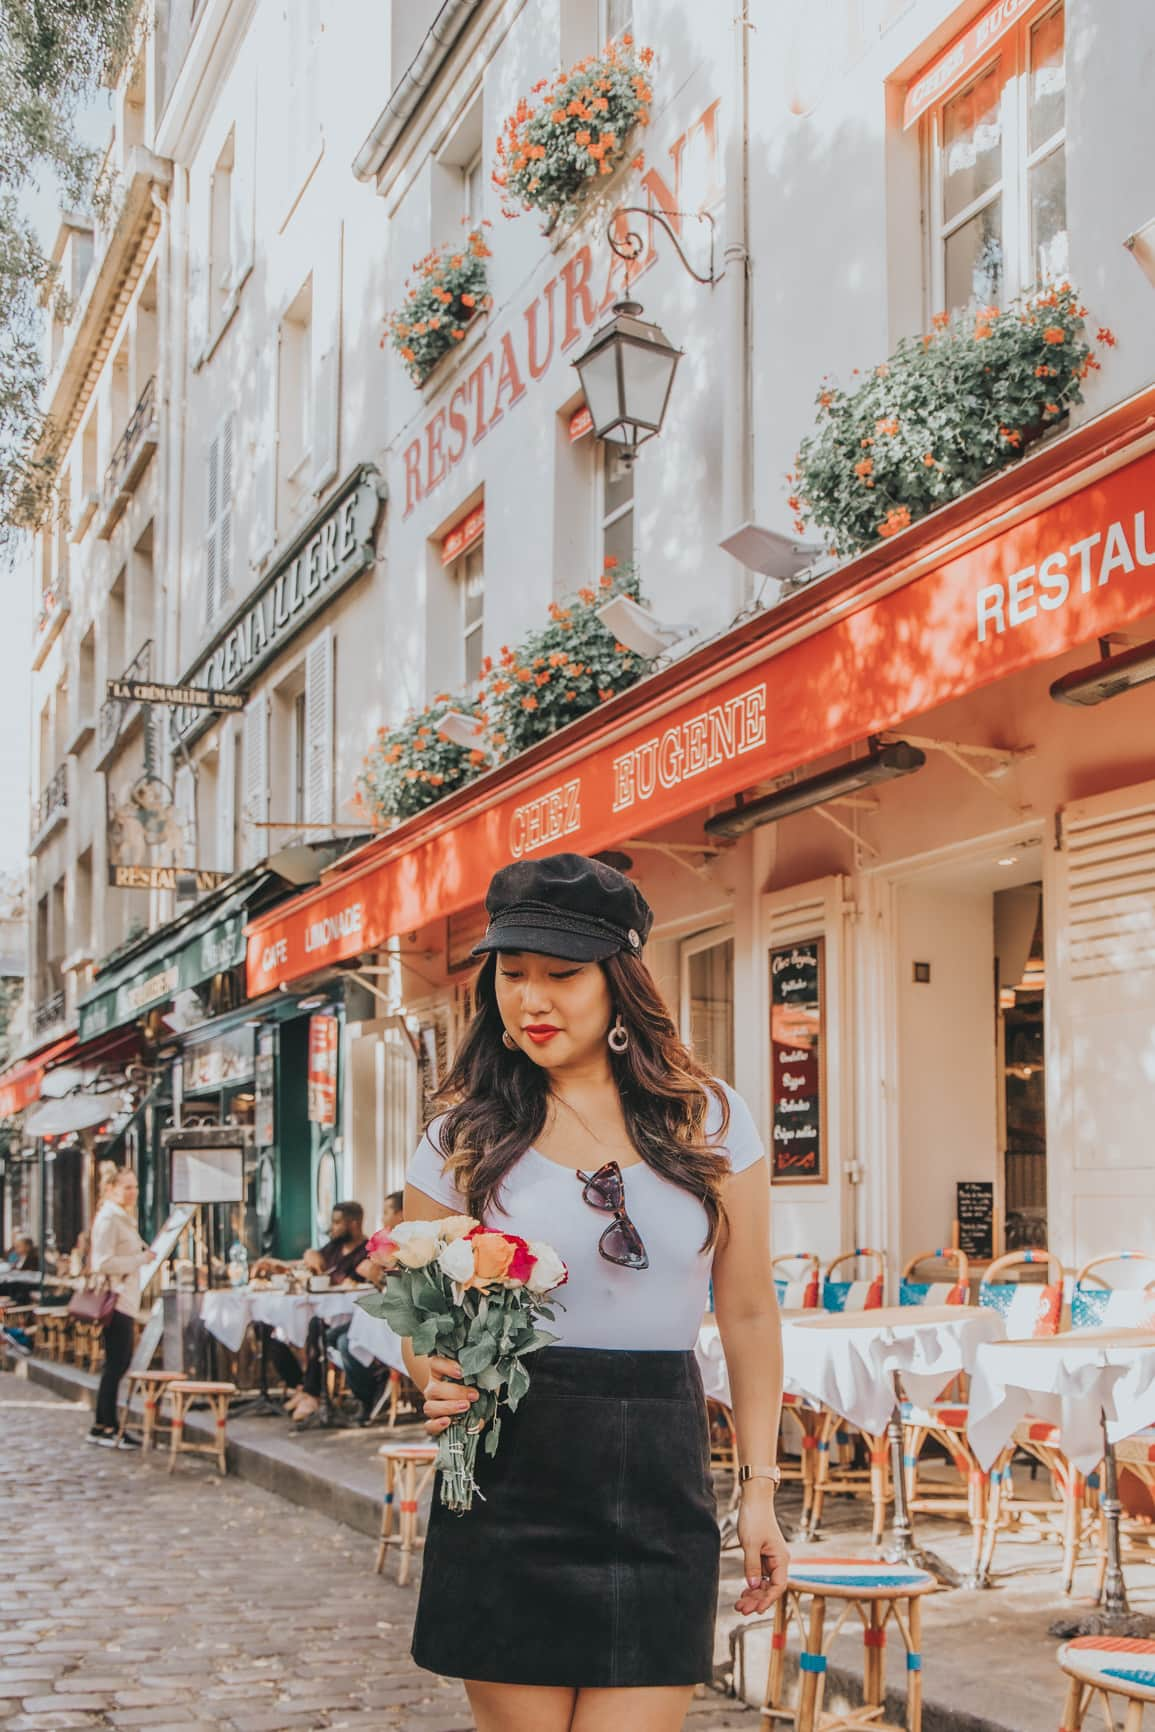 instagrammable places in montmartre paris